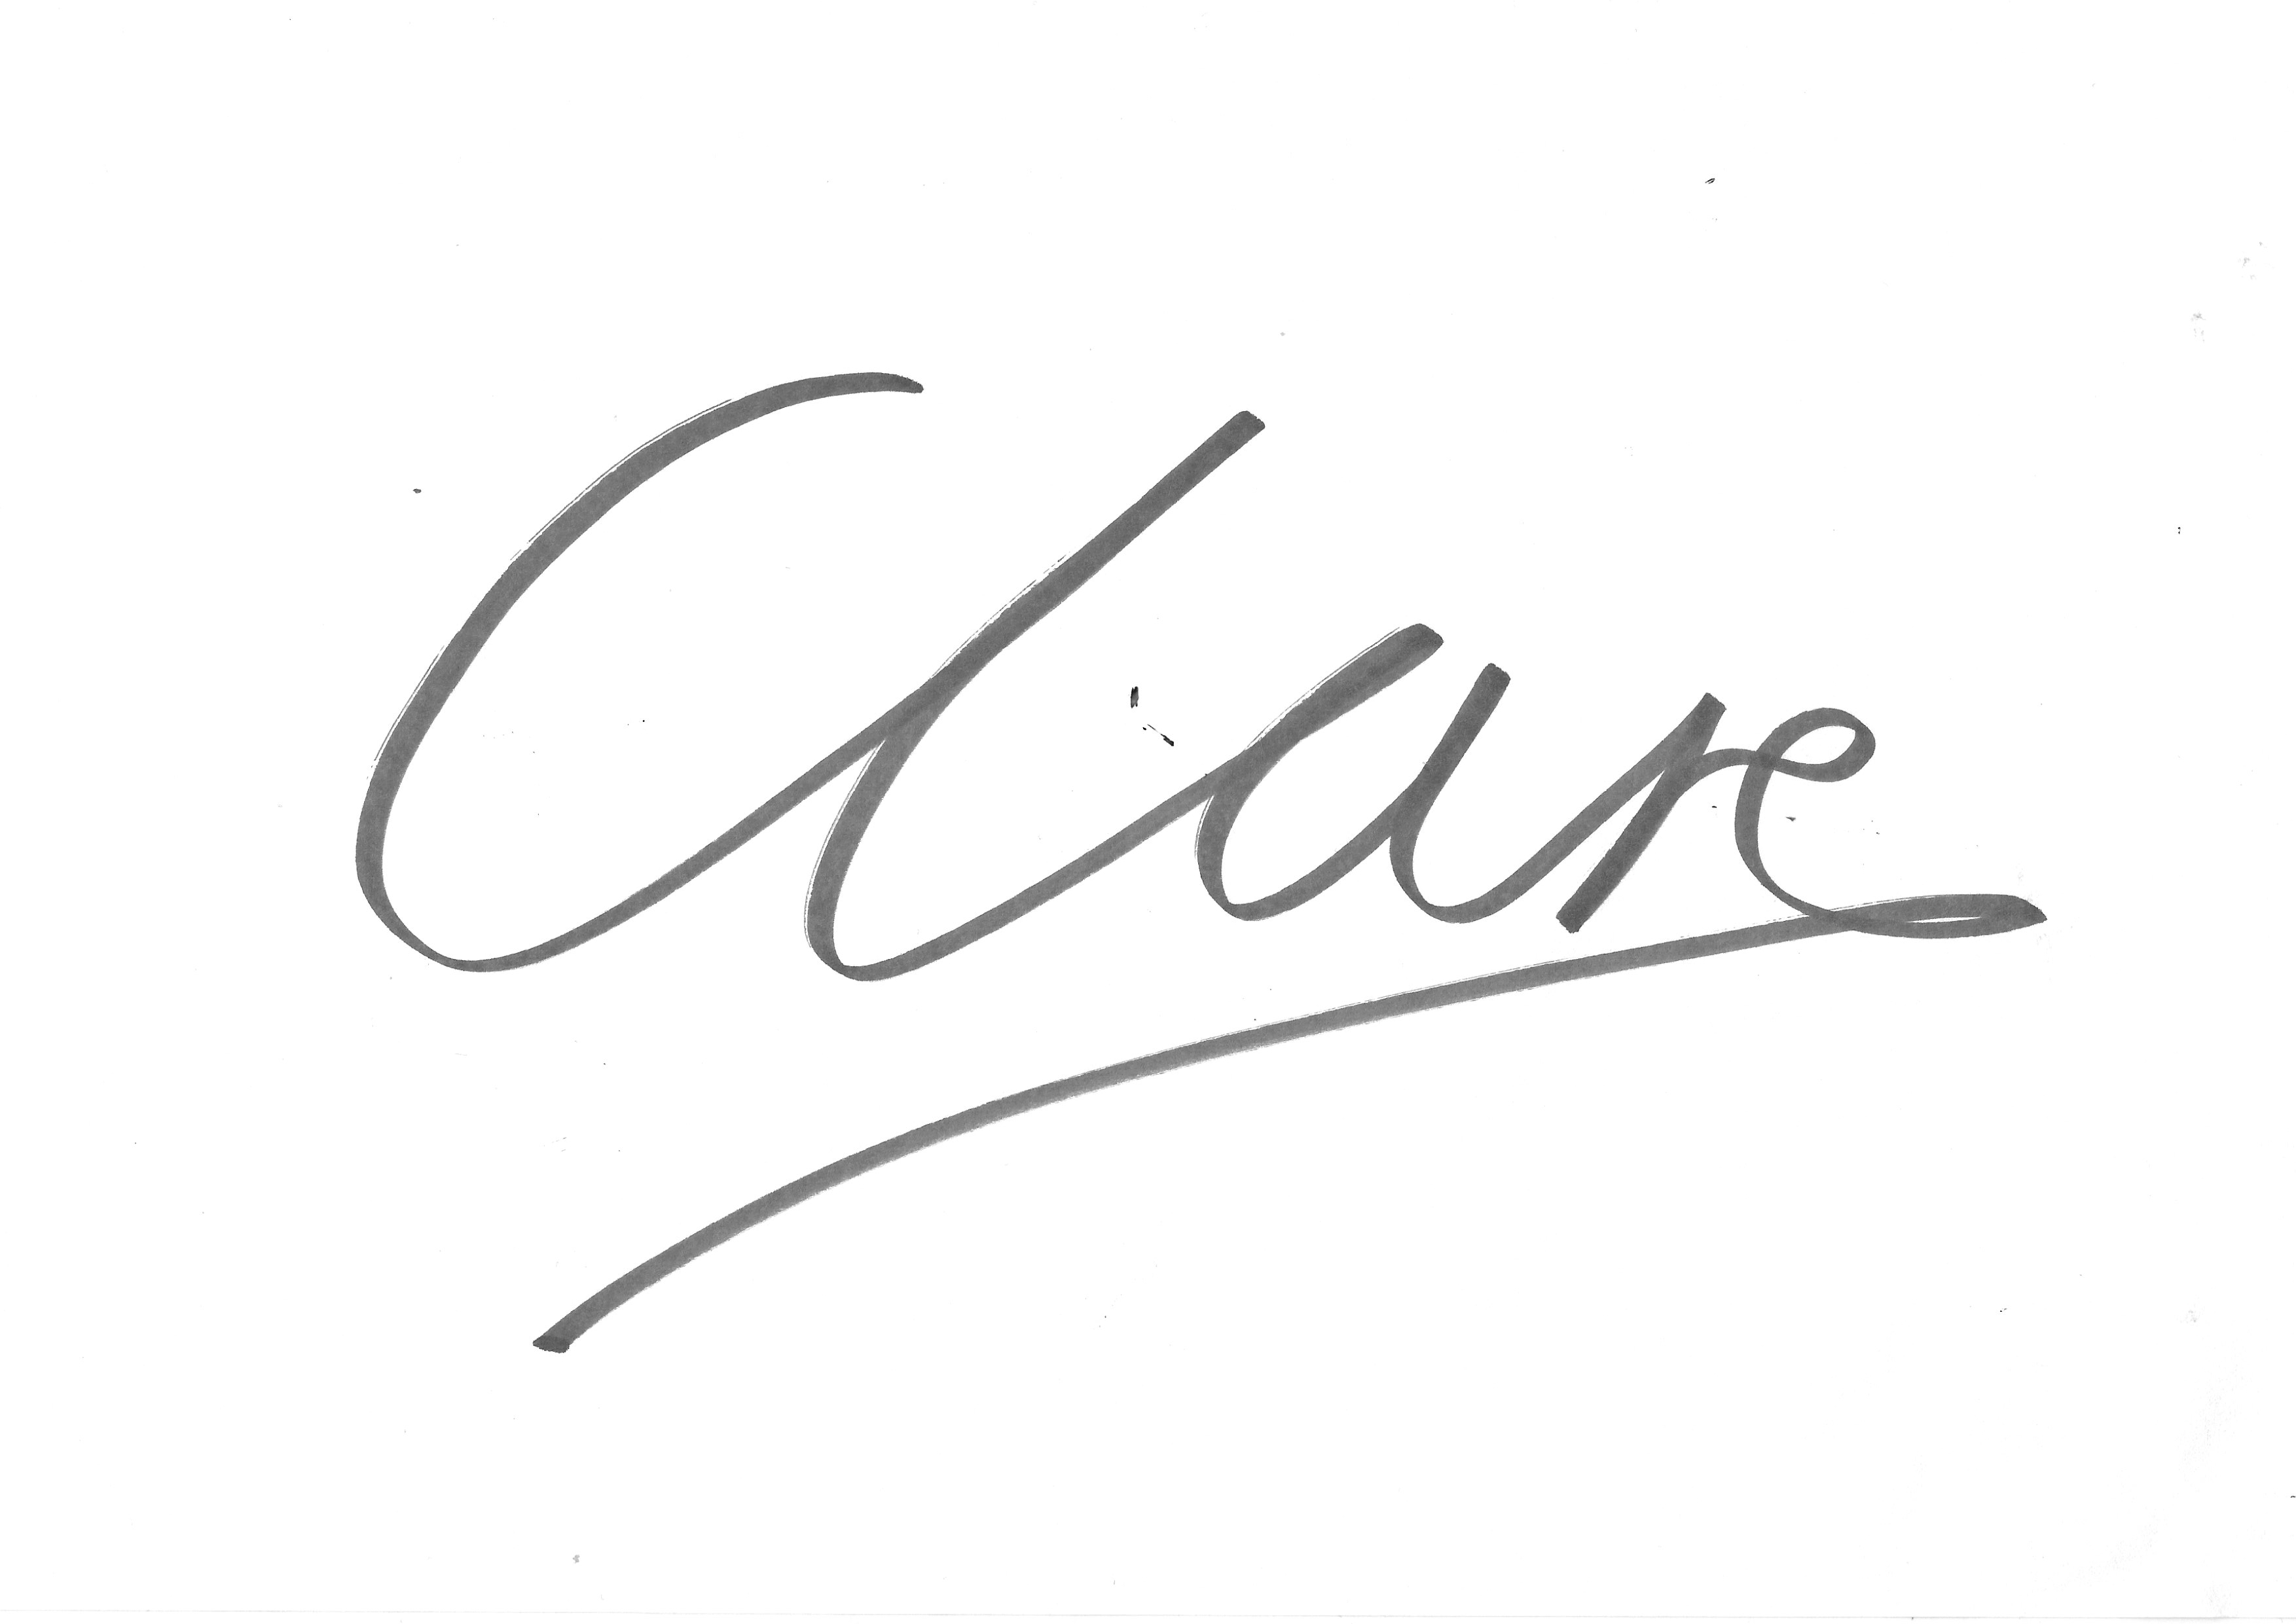 Clare Windass's Signature